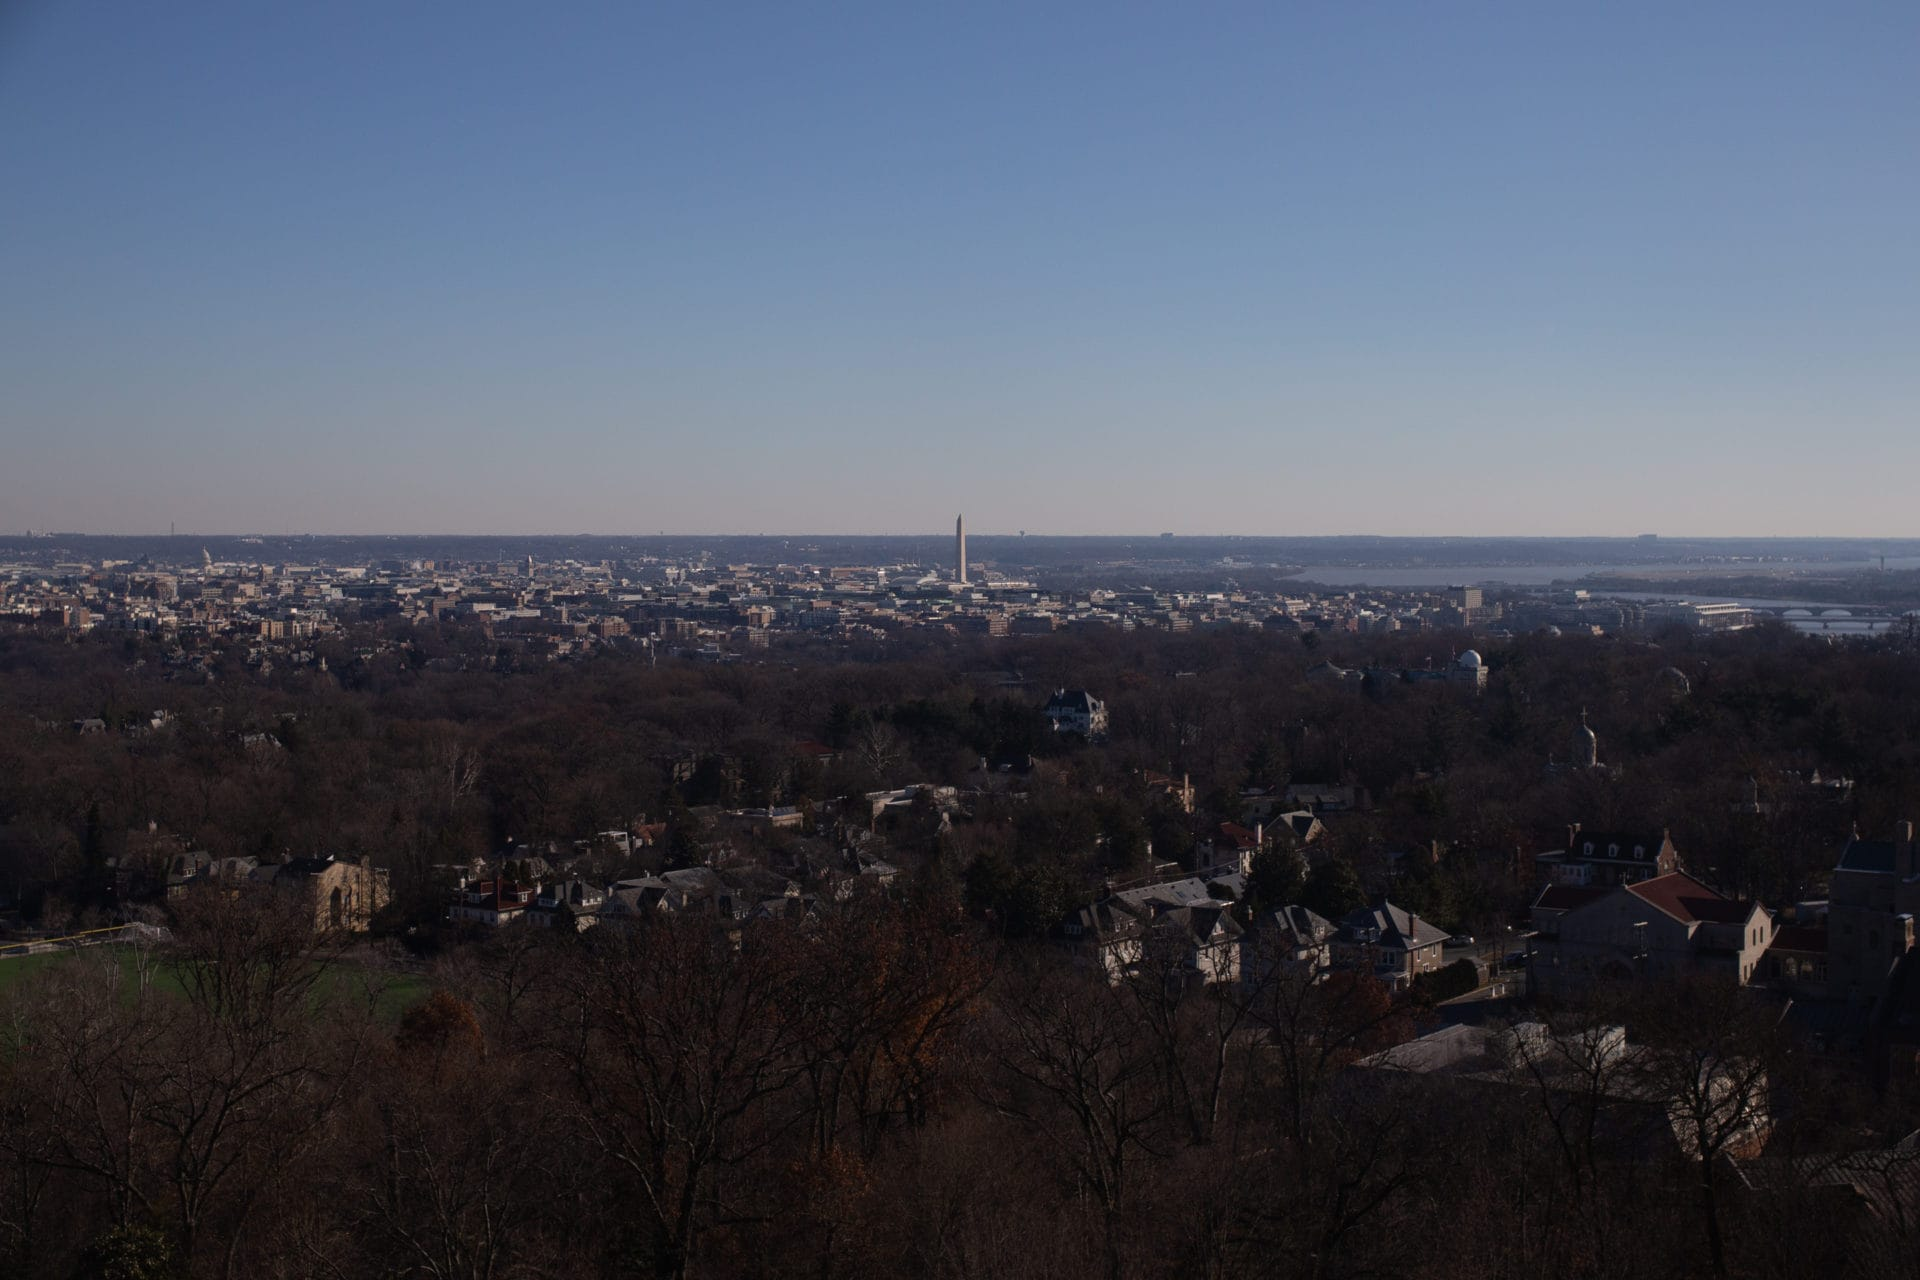 A view of the Washington Monument.